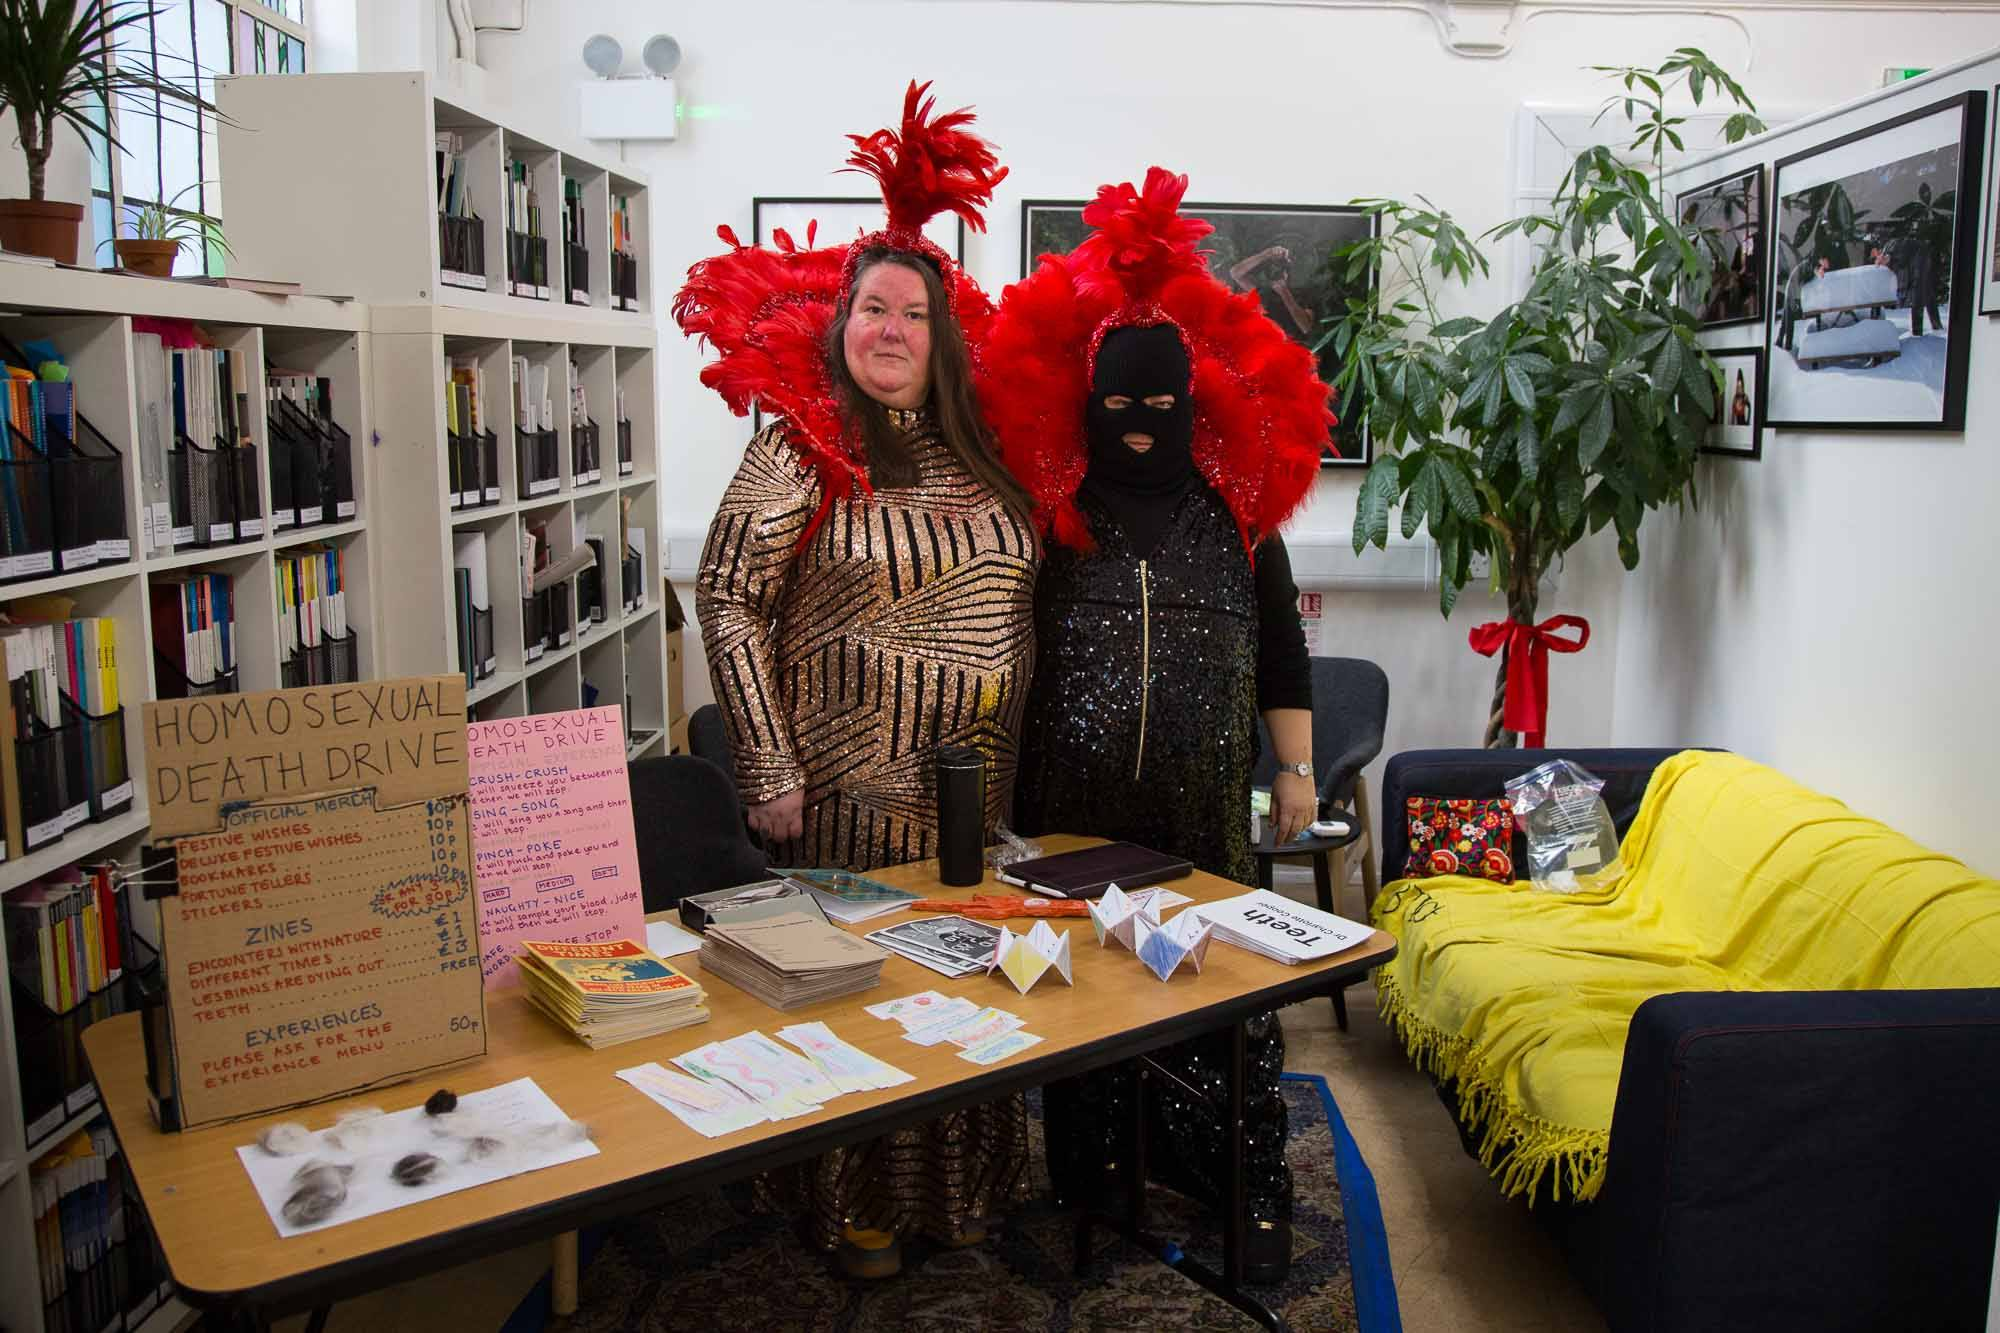 Homosexual Death Drive, a queer punk band stand behind a table of merch. They wear sparkly jumpsuits and red showgirl head pieces.